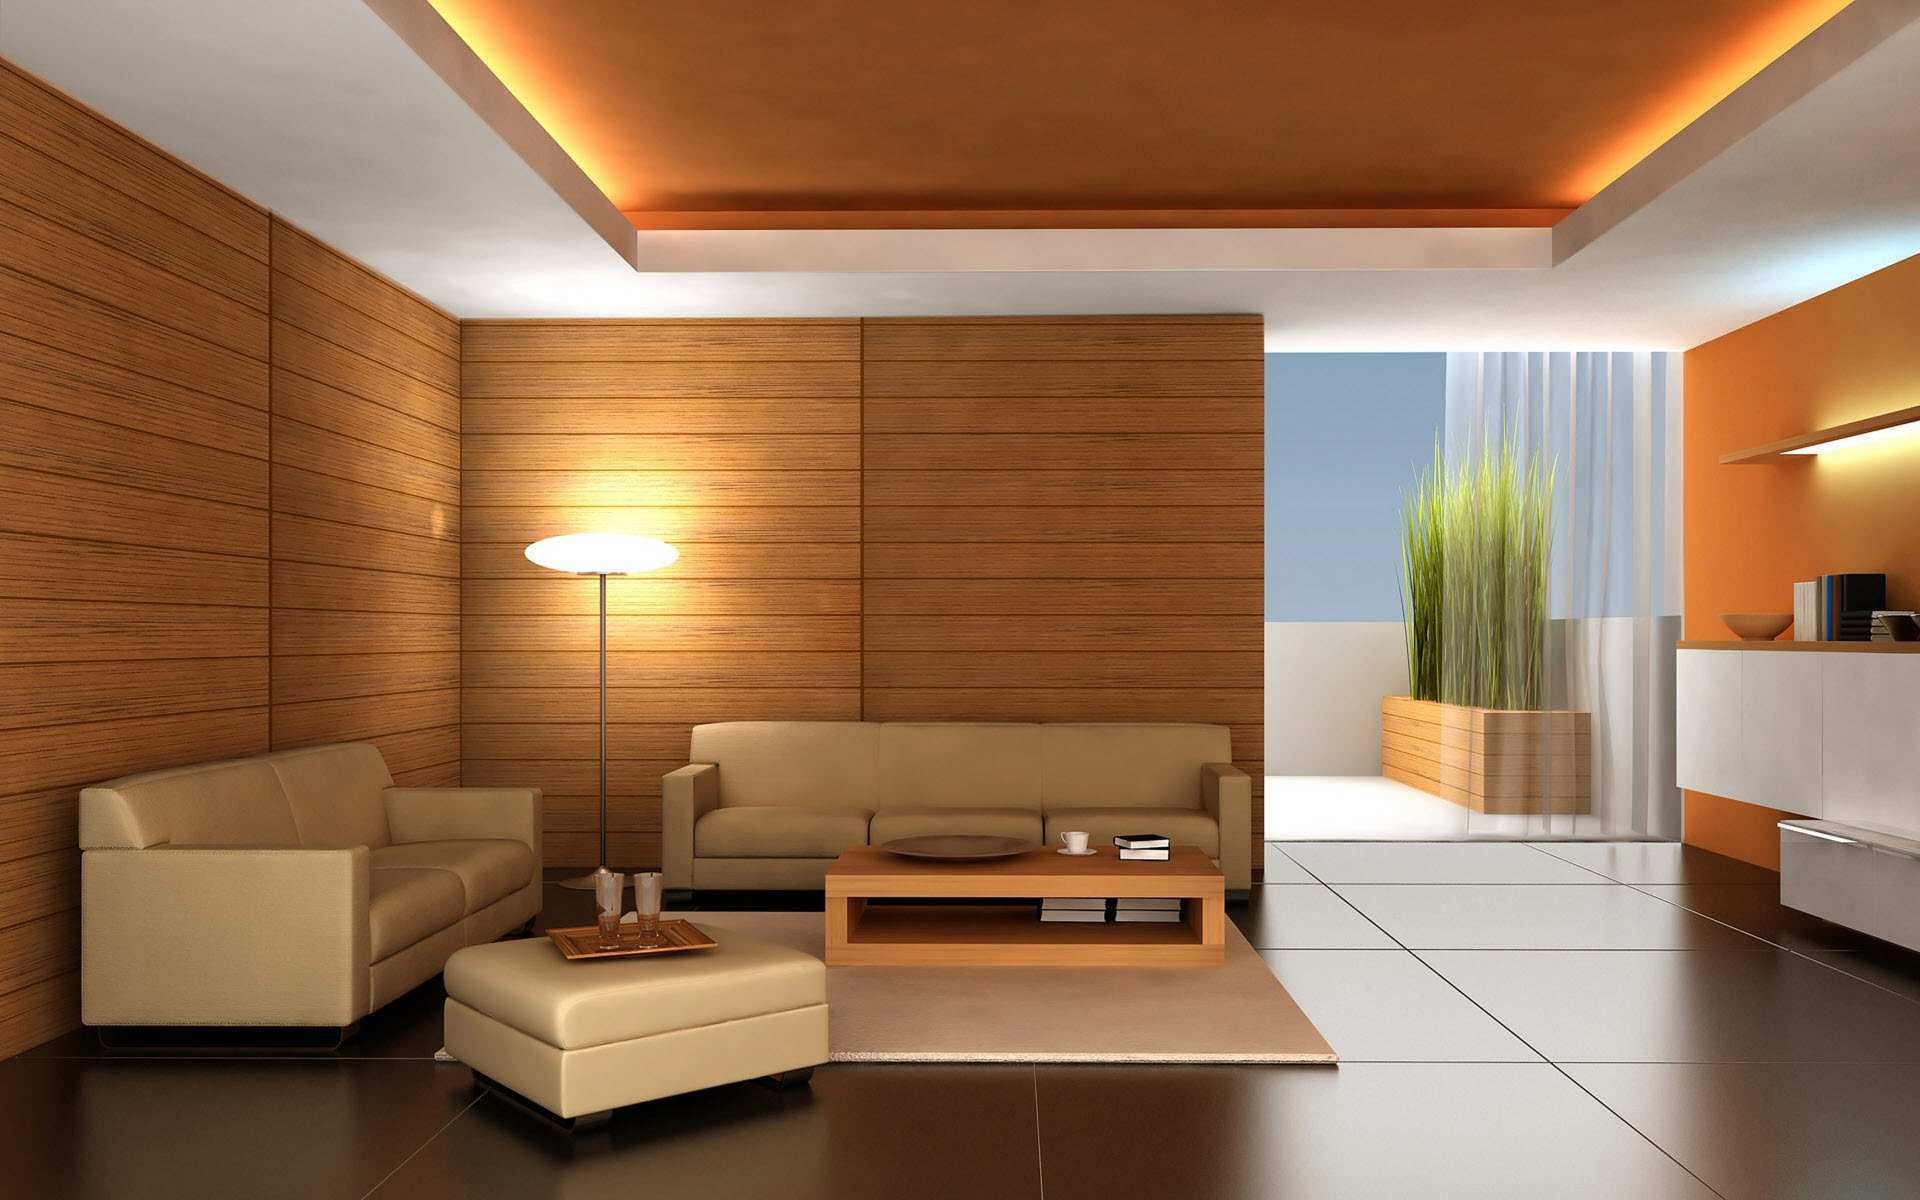 Living Room Interior Designs The Best Living Room Interior Designs With Simple Sofa  Interior